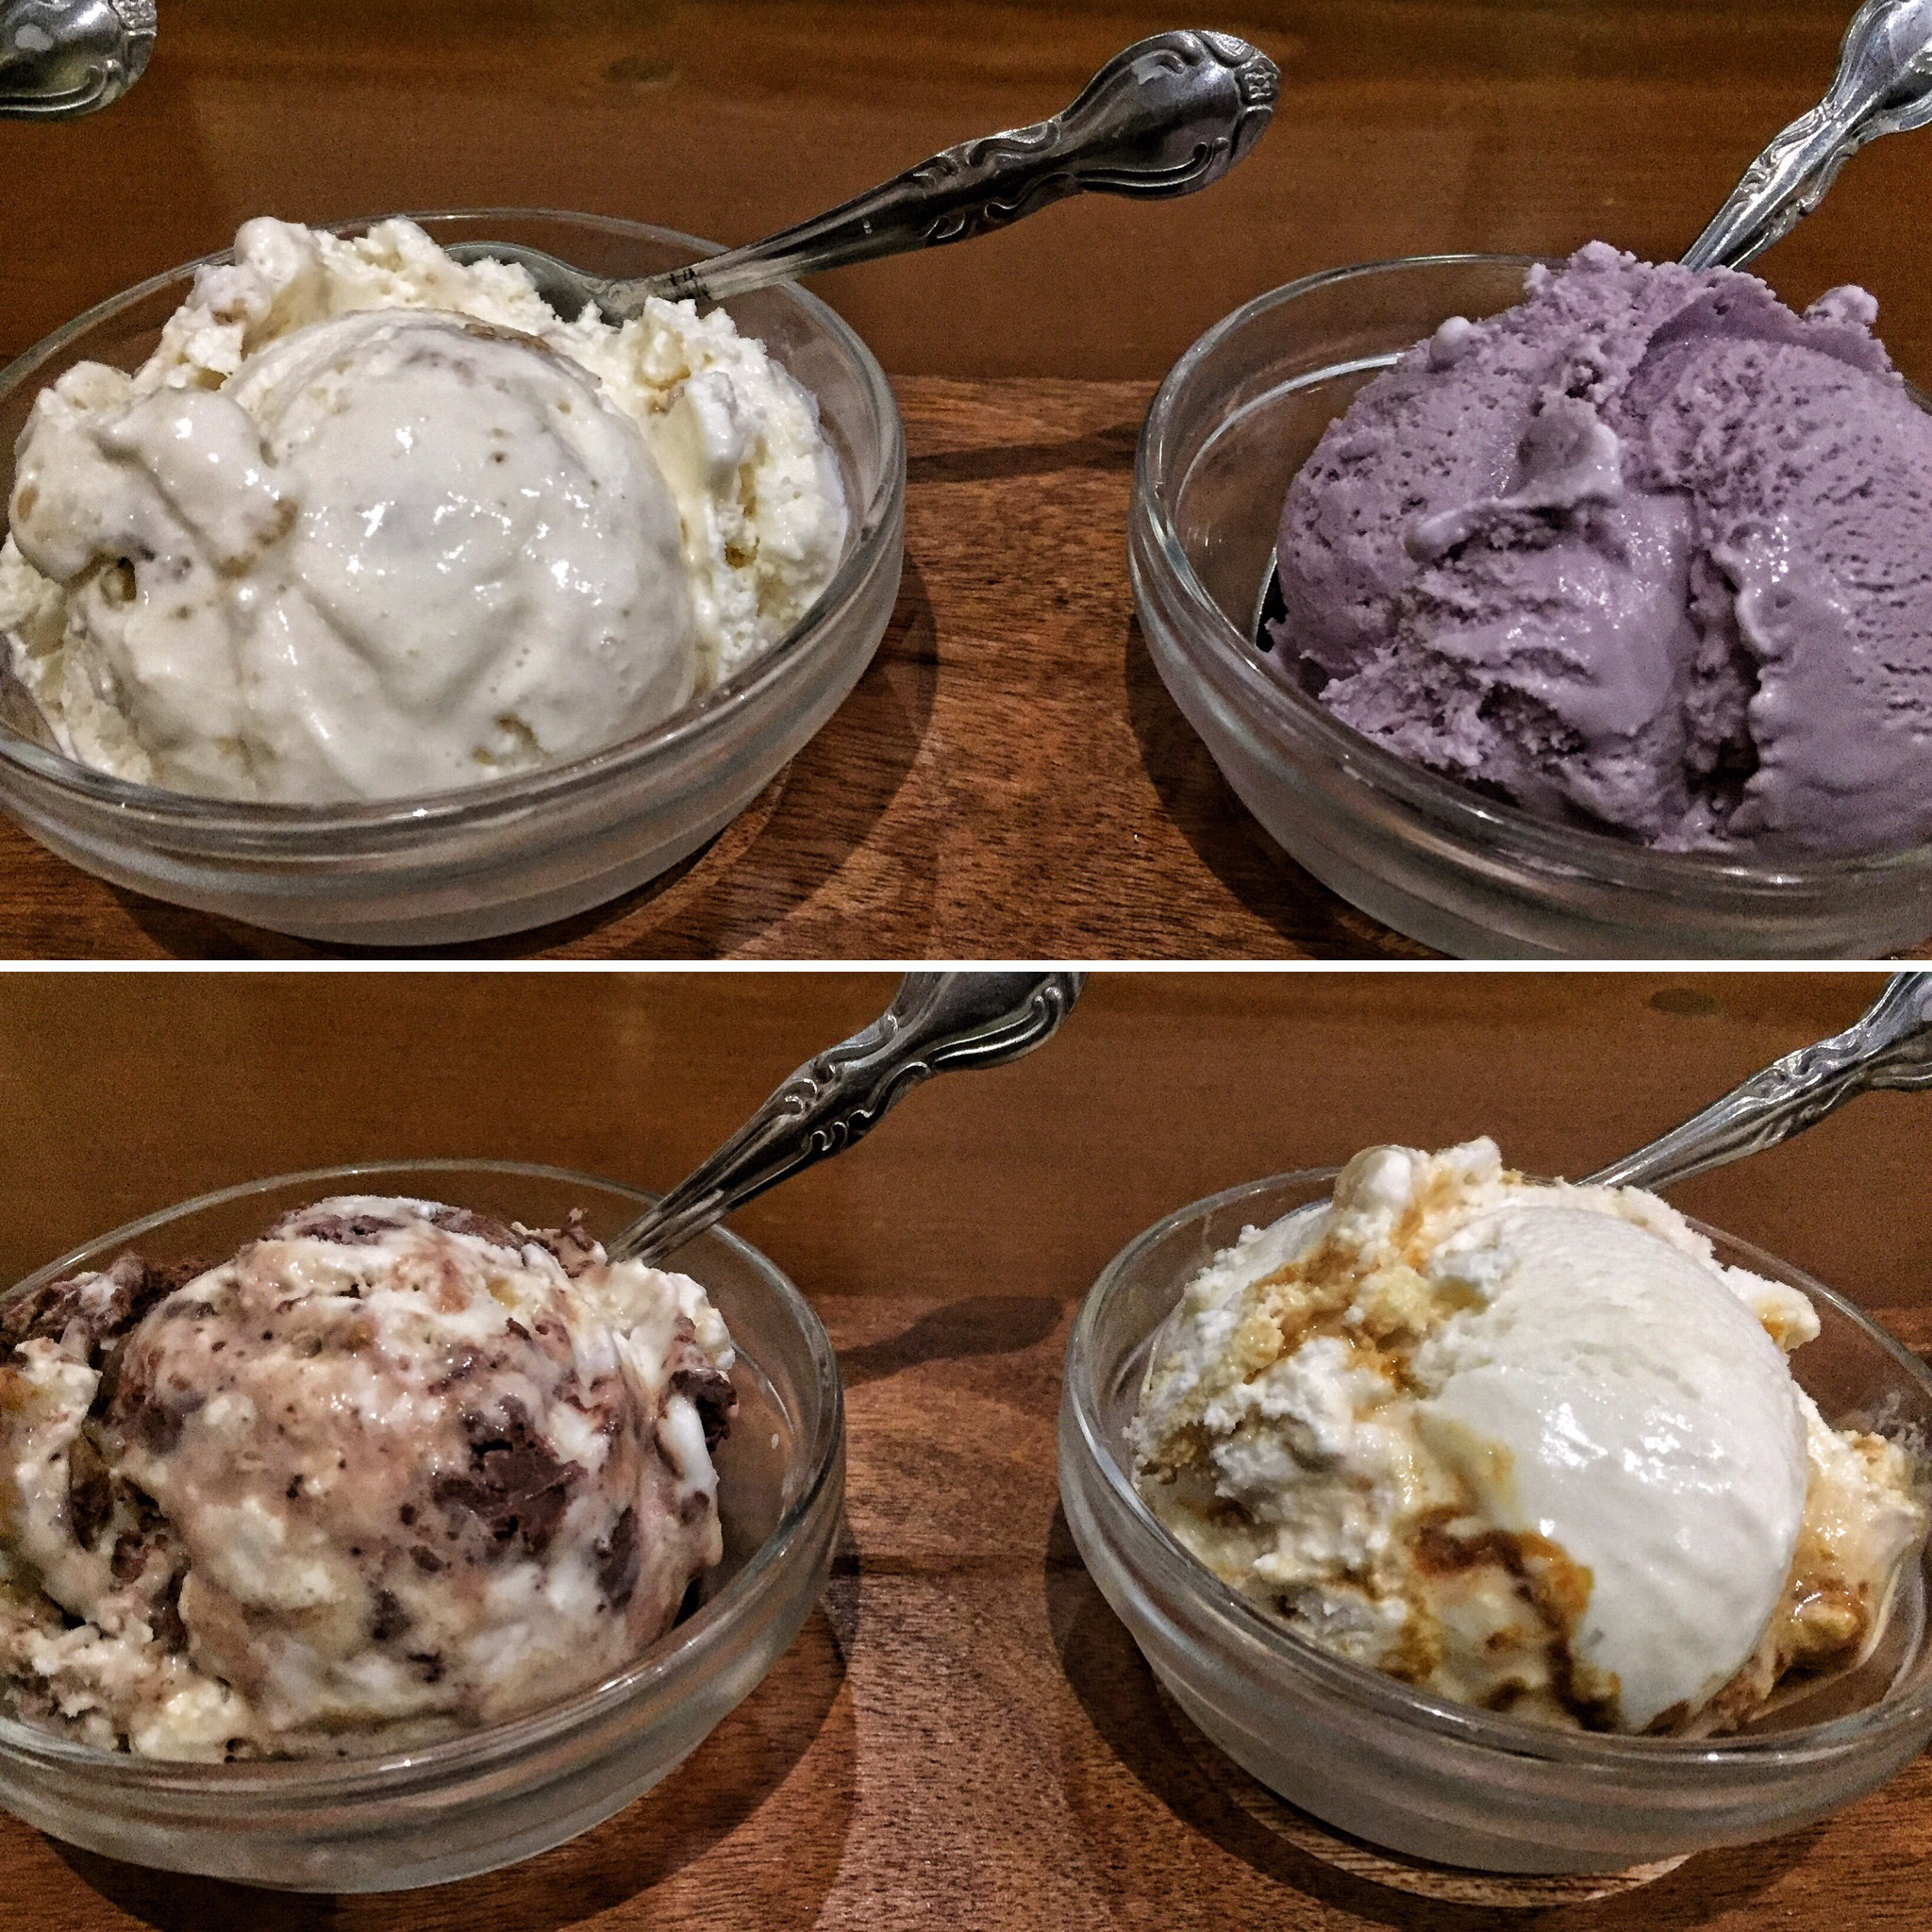 Salt and Straw Ice Cream Flight. Amazing flavors! Tip: get the flight so that you can taste test multiple flavors.